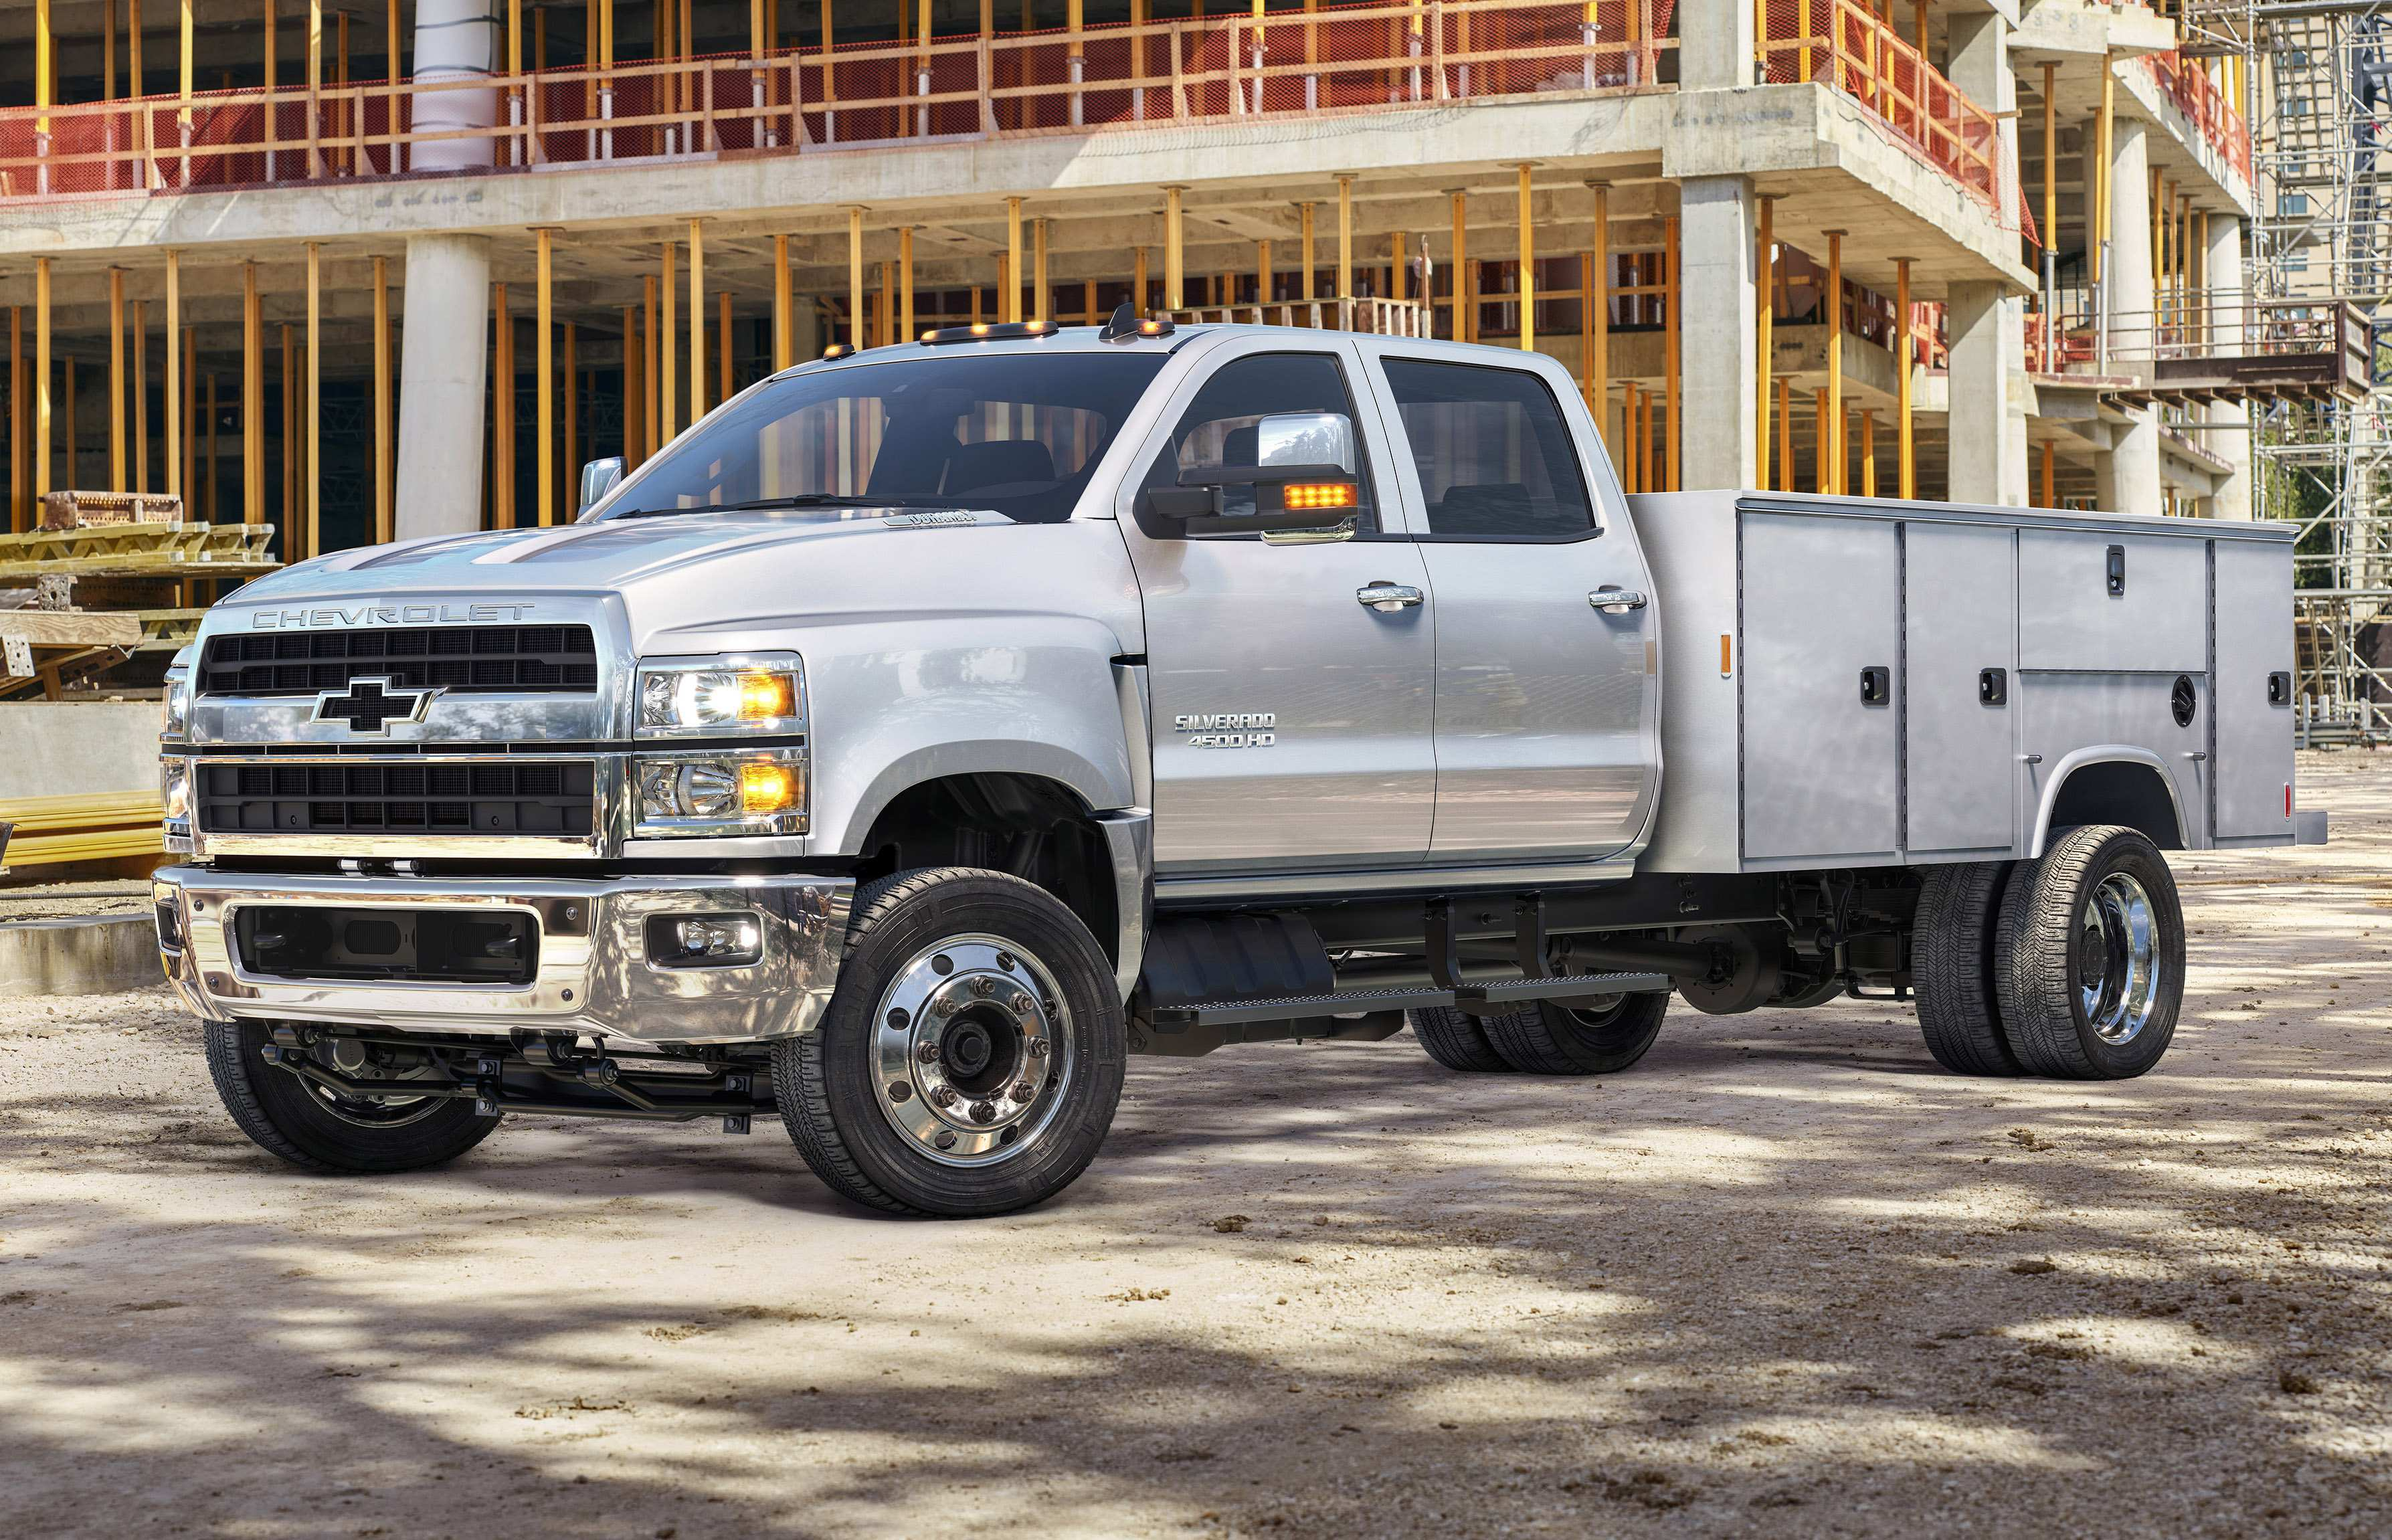 88 Best Review 2020 Chevrolet Silverado 2500 Performance and New Engine with 2020 Chevrolet Silverado 2500